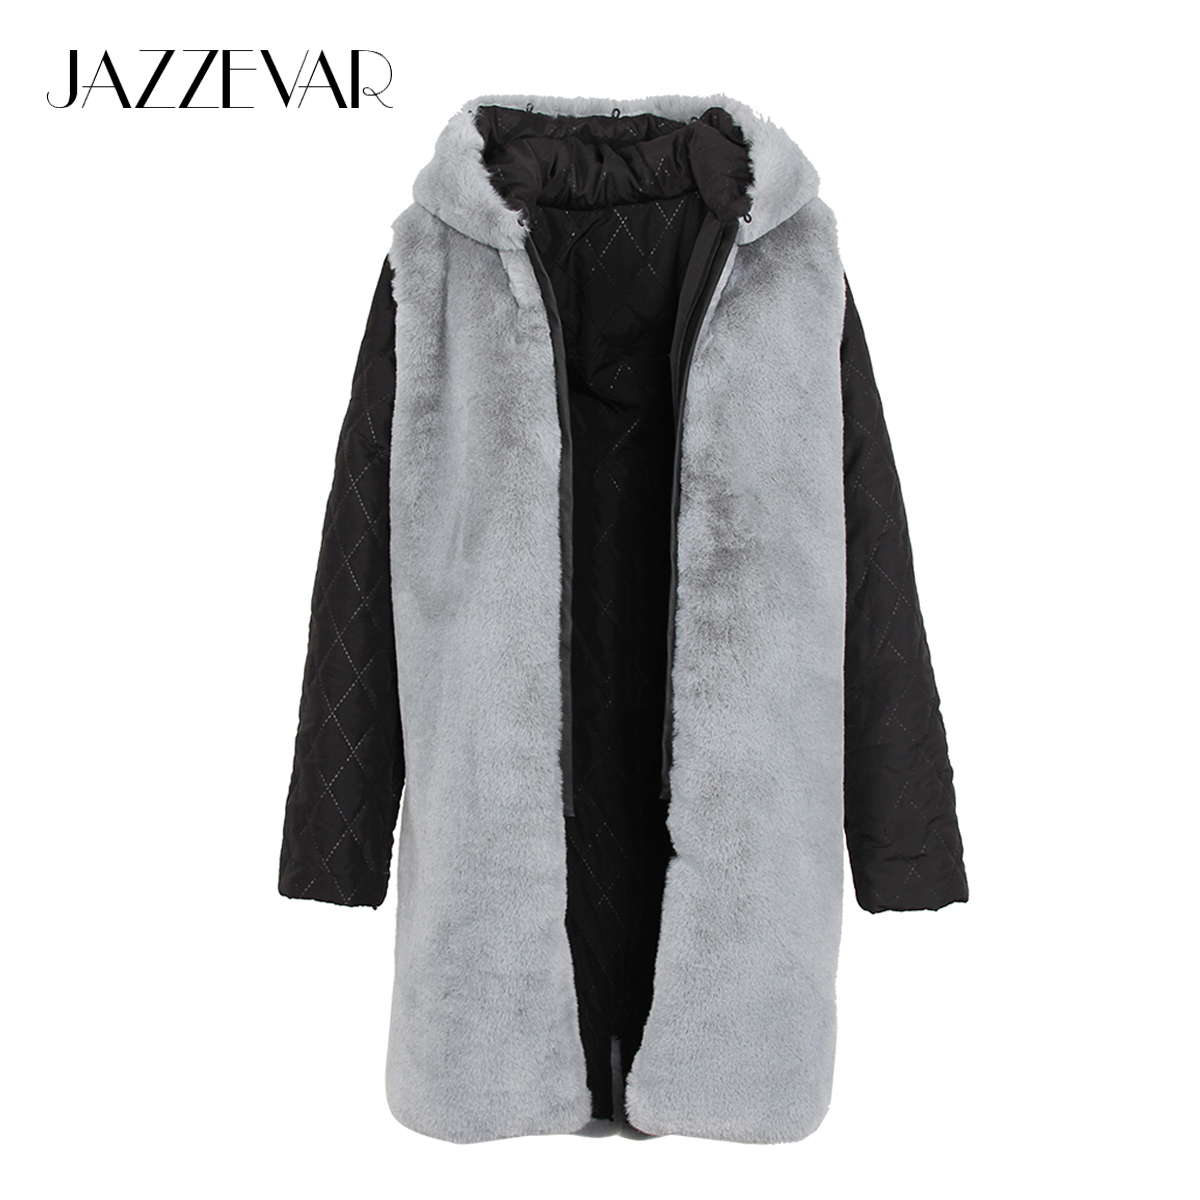 JAZZEVAR 2019 New Fashion High Quality Women s Outer hooded Faux Fur Liner